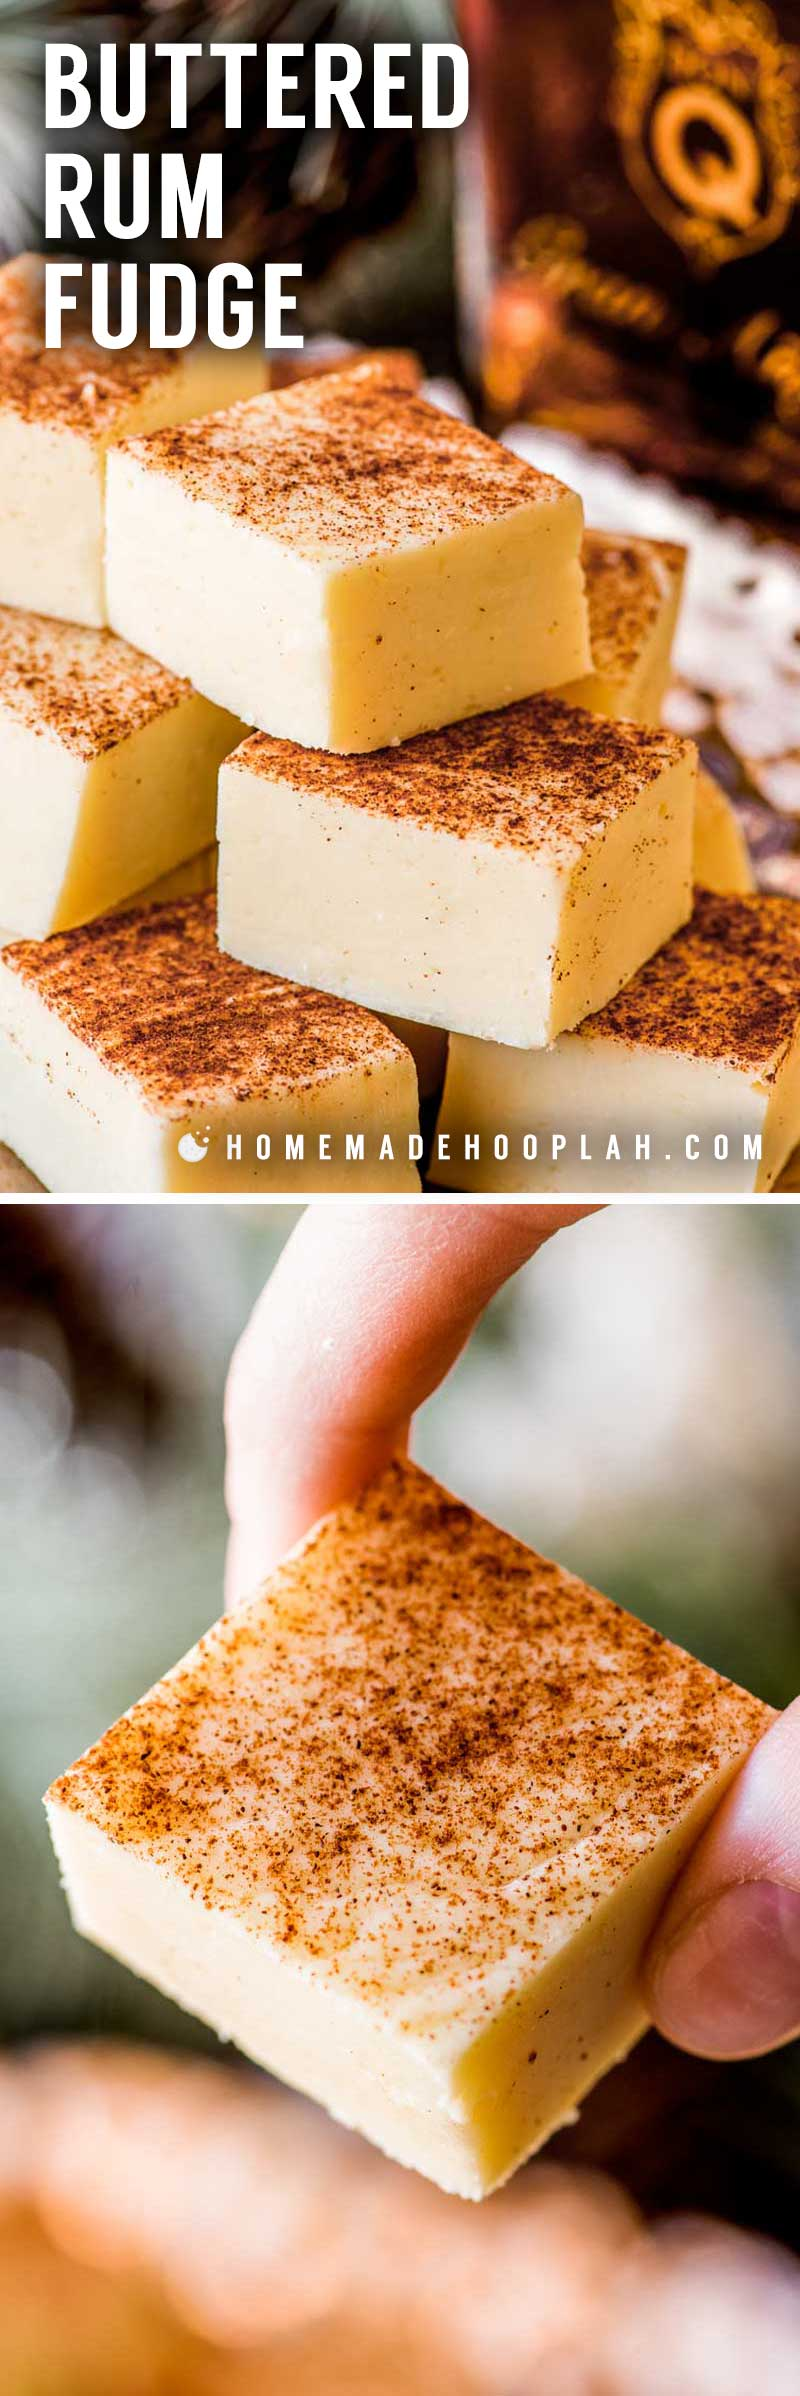 Buttered Rum Fudge! This white chocolate fudge is flavored with Don QGran Añejo, giving this rum fudge a taste of a classic hot buttered rum. Perfect for gifting! | HomemadeHooplah.com